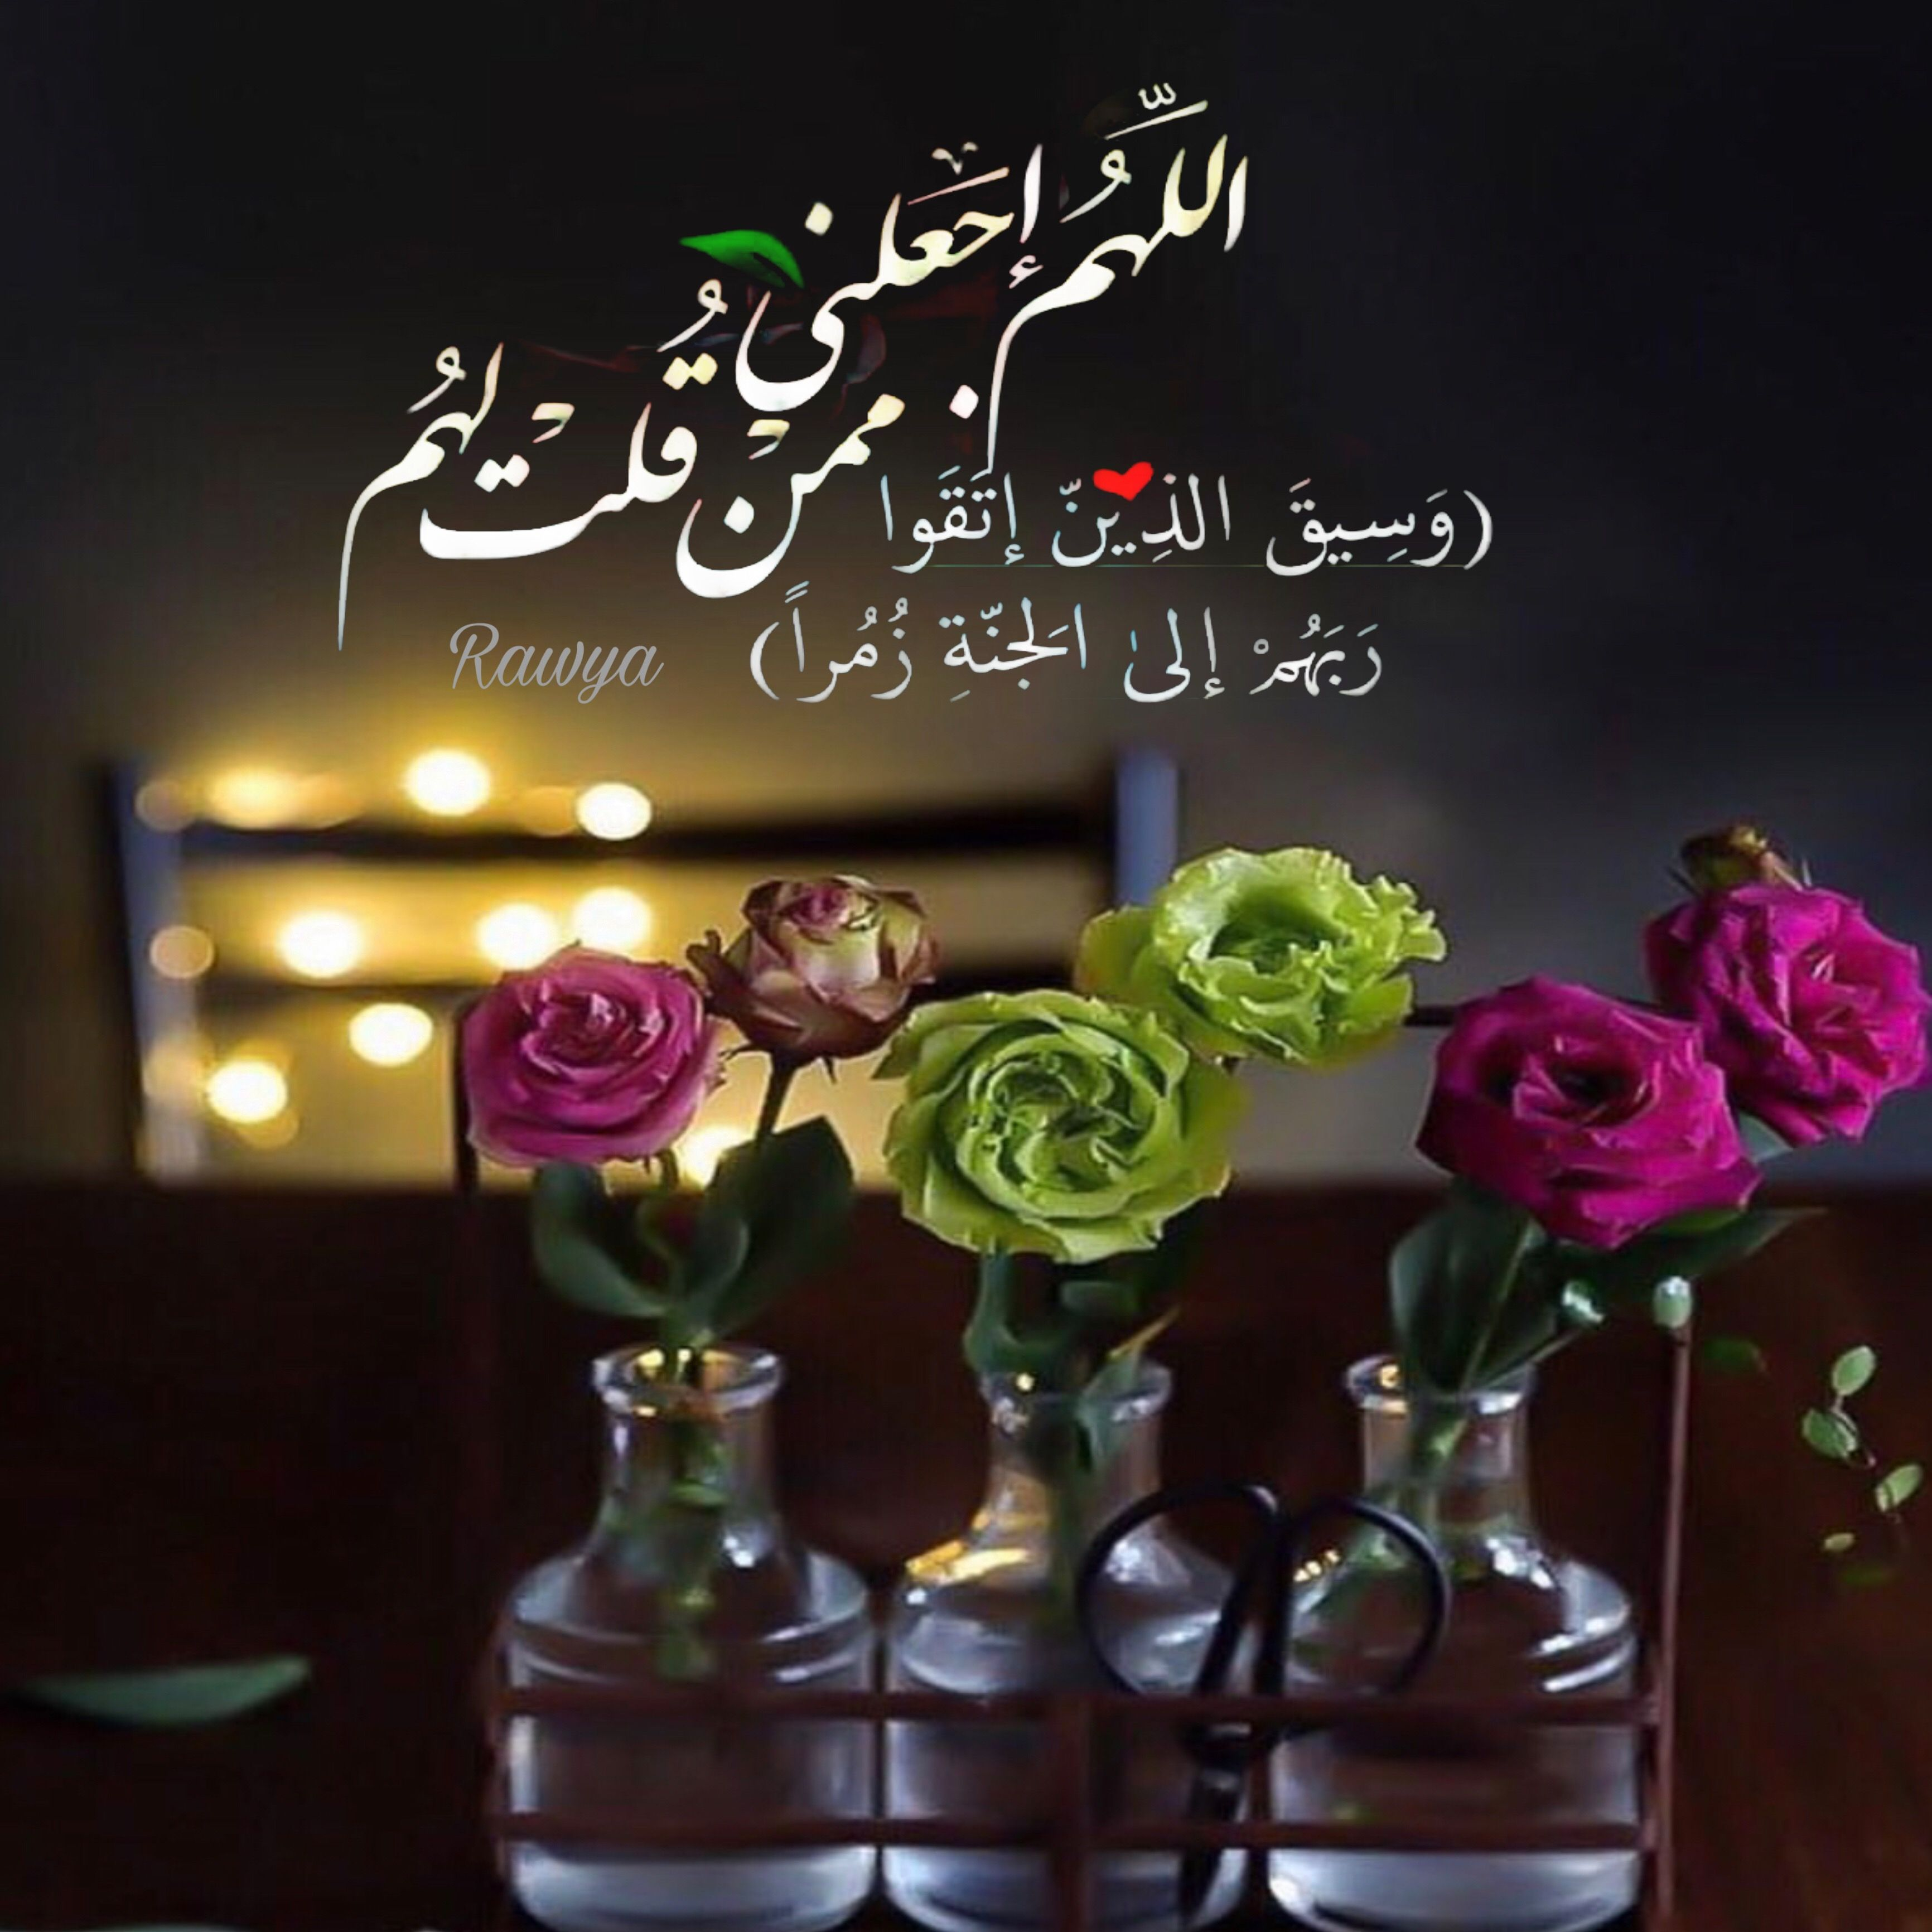 Pin By مسك الريحان On Deen Allah Nothing Without You Good Evening